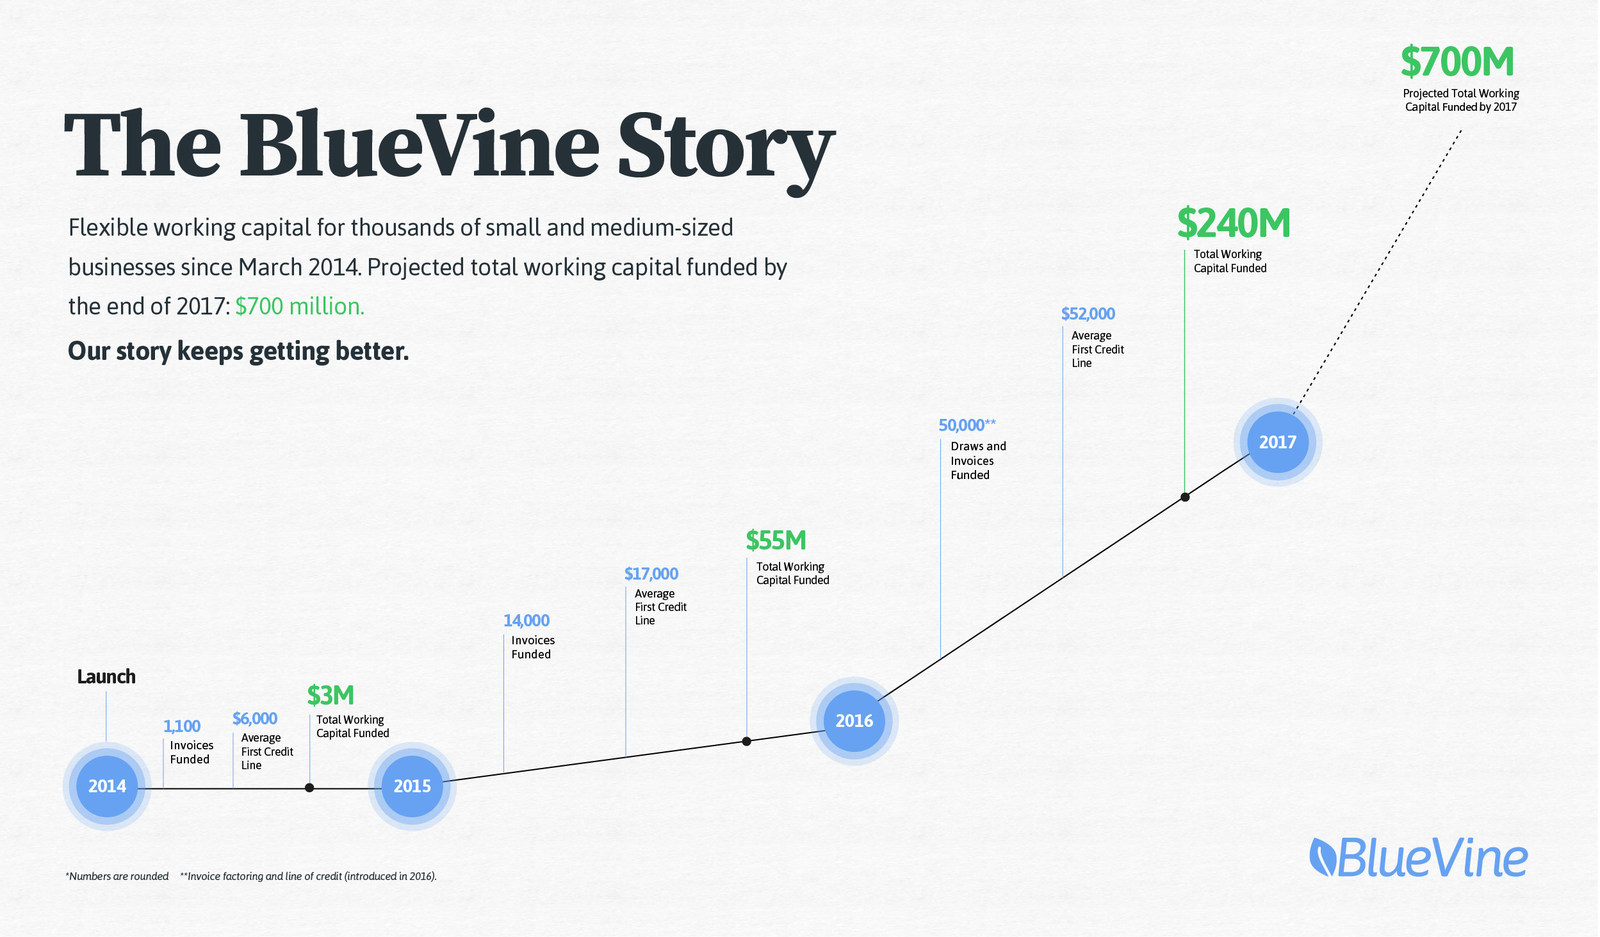 BlueVine: One of the Top FinTech Players in the Bay Area